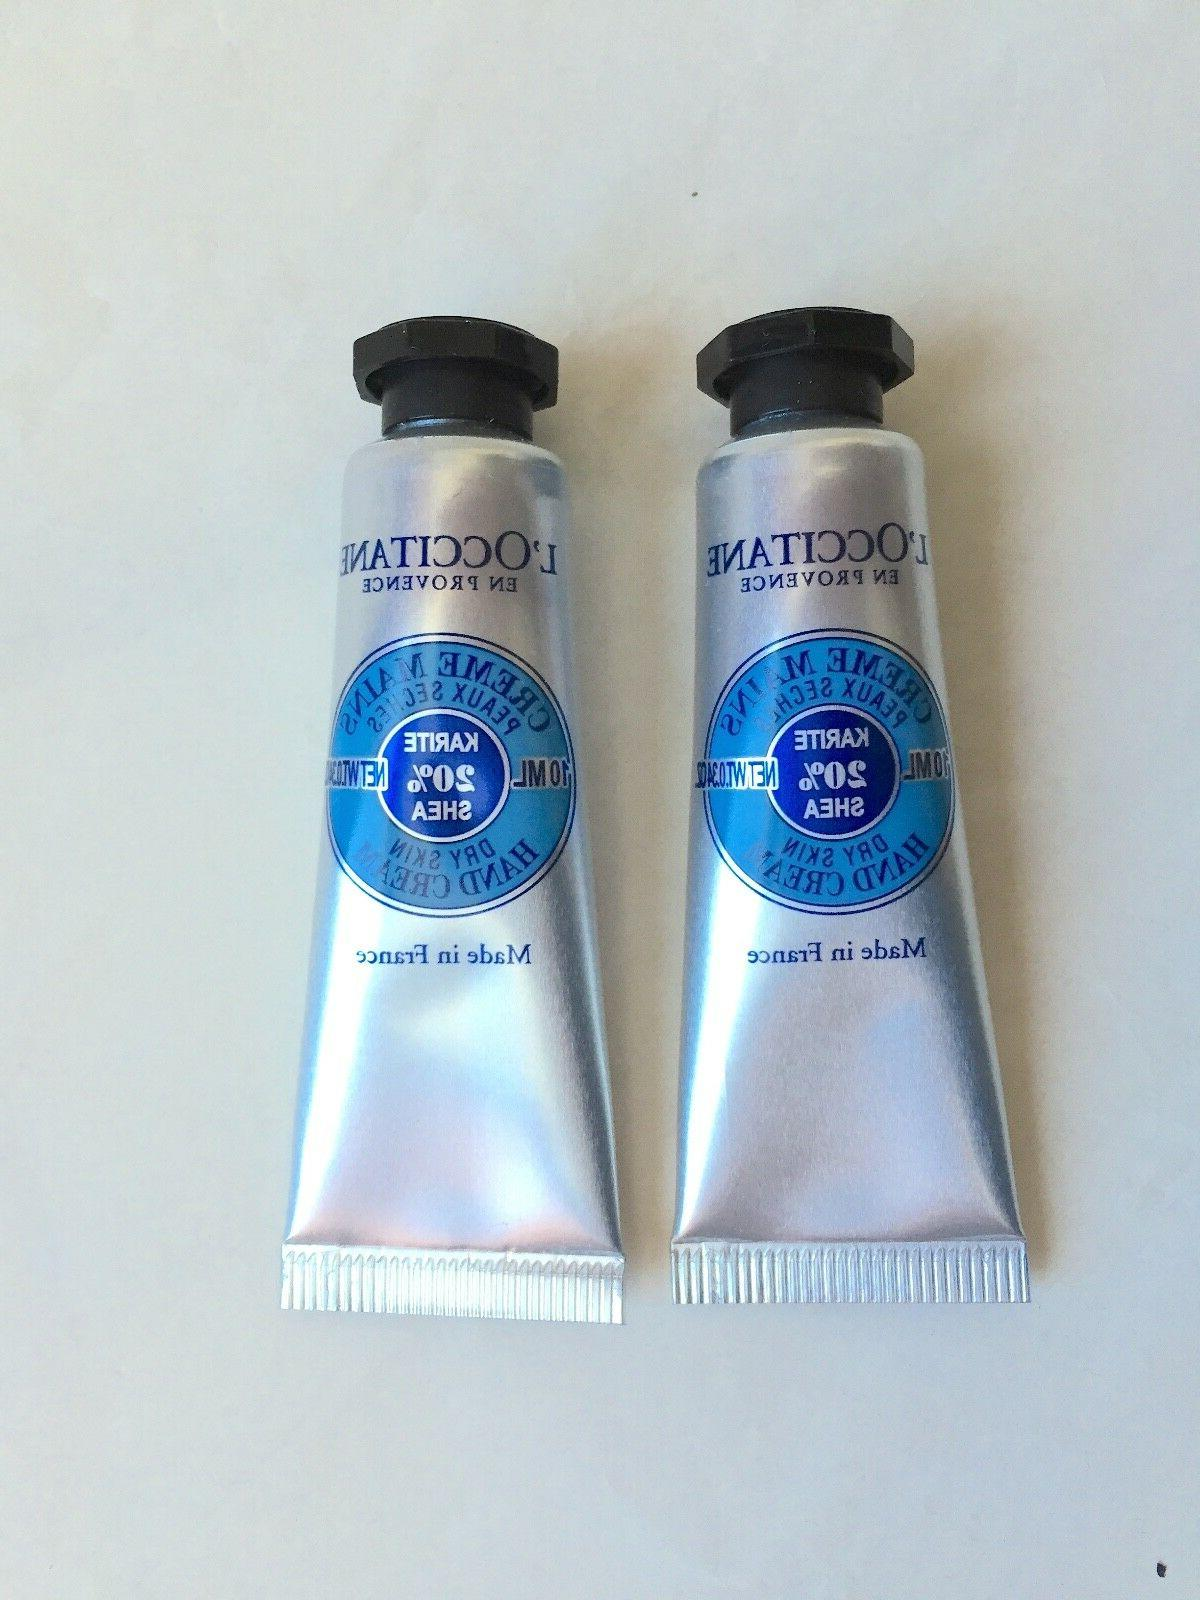 2 x L'Occitane Cream Mains Dry Skin Hand Cream 0.34oz./10ml.